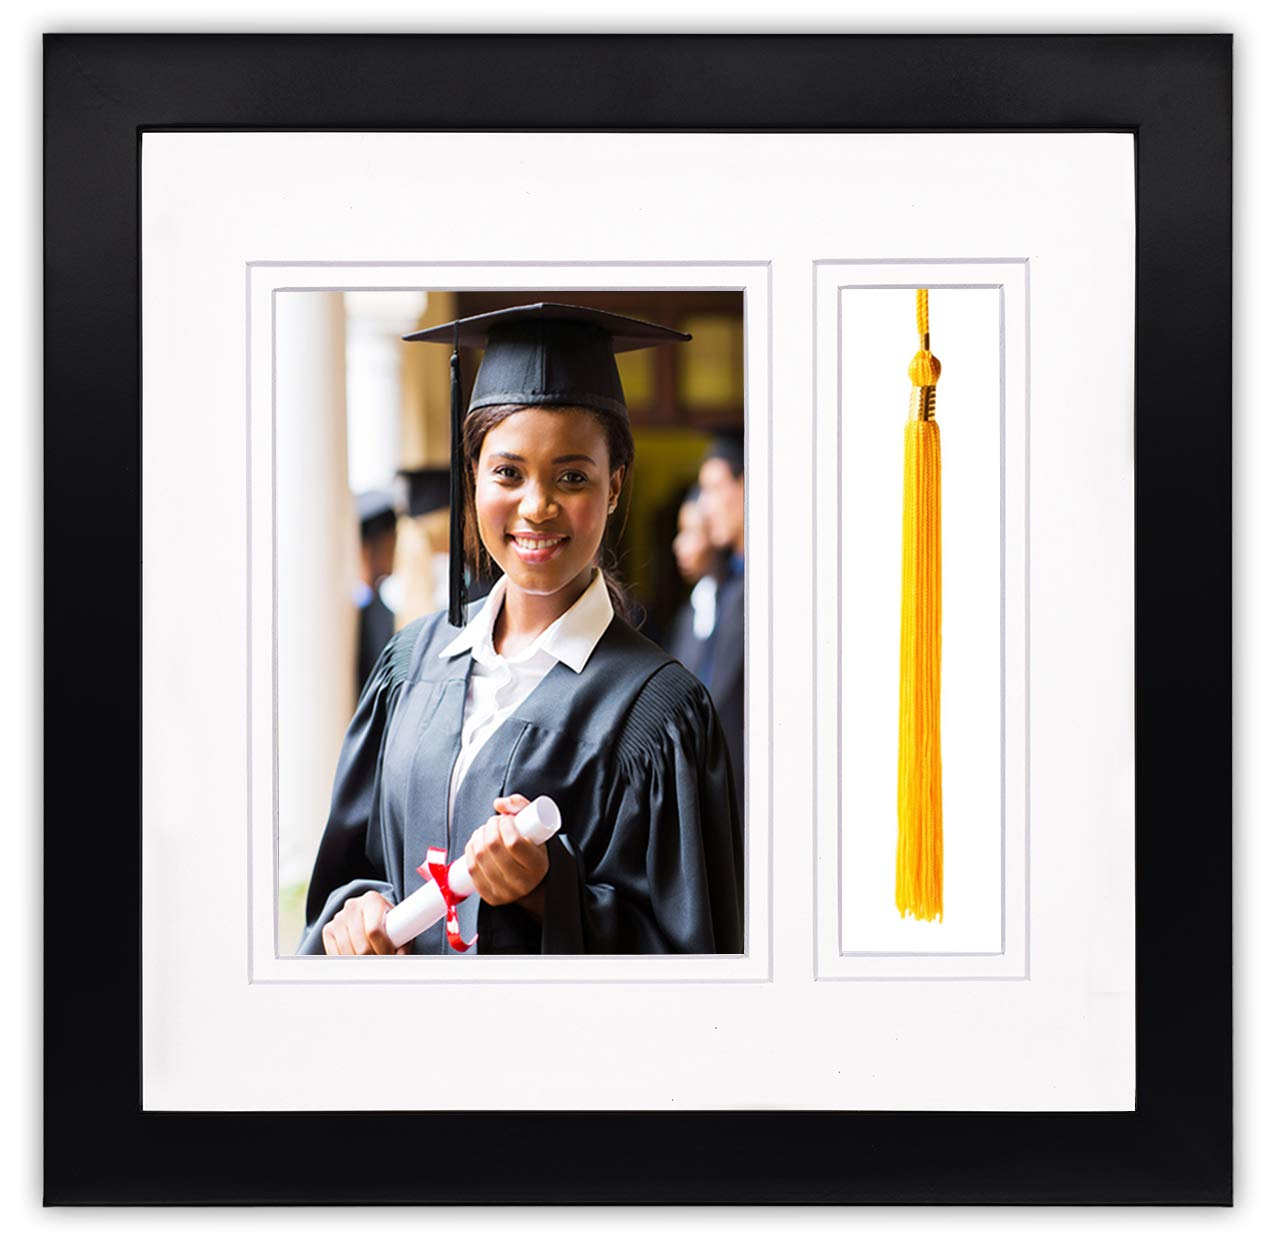 Golden State Art, 10x10 Graduation Shadow Box Frame for 5x7 Photo with Tassel Insert, Double Mat (White Over White) by Golden State Art